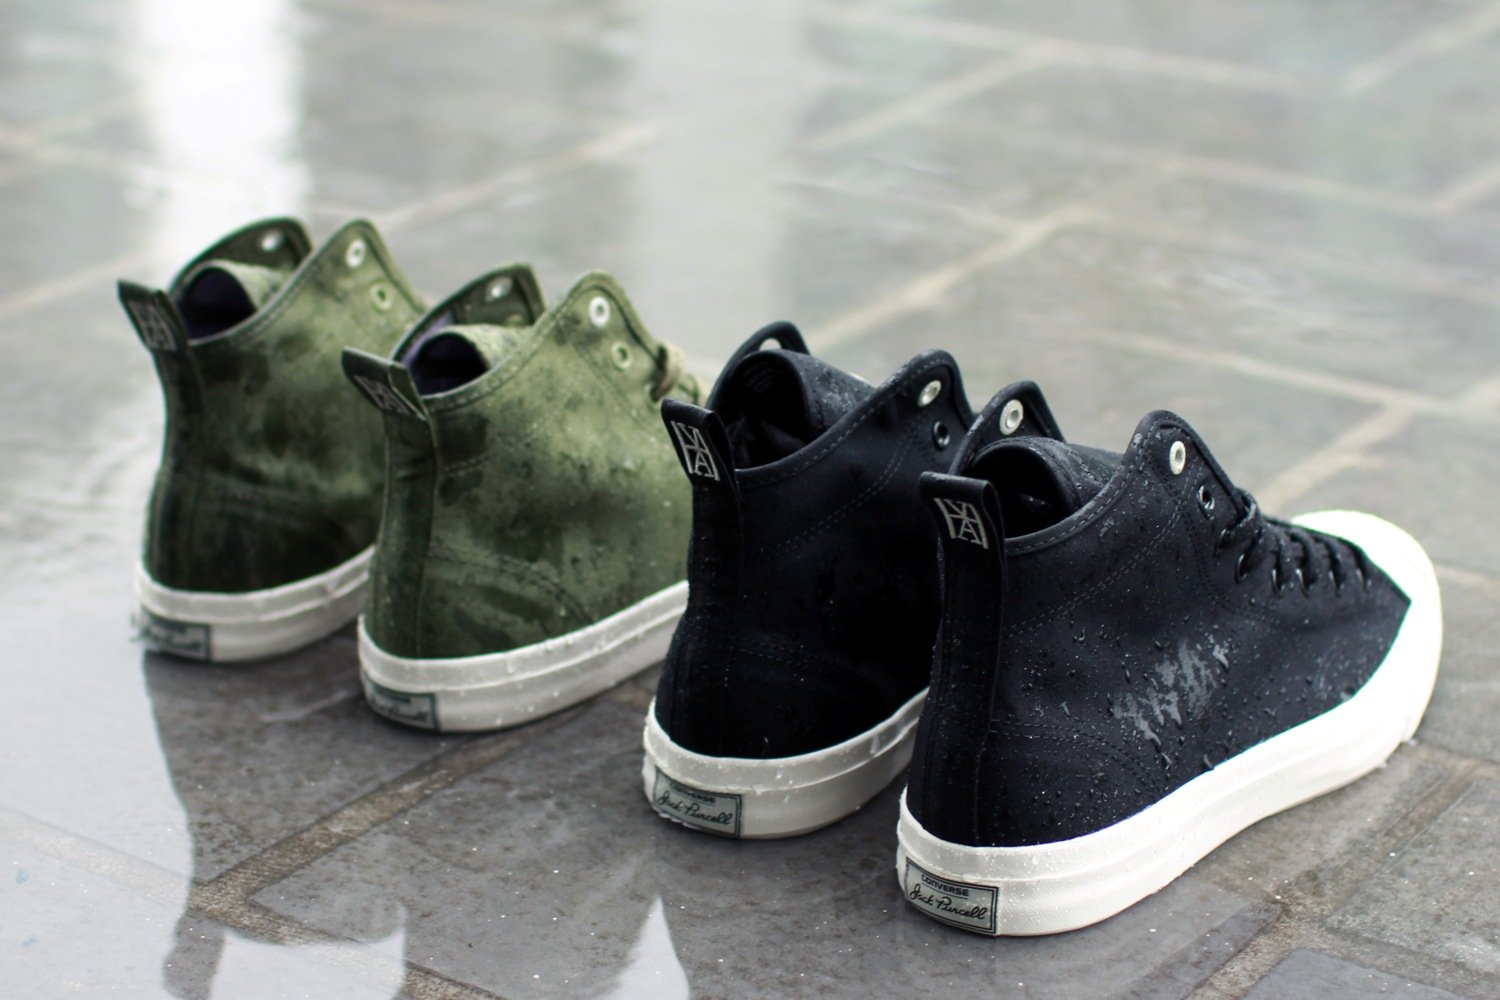 Forum on this topic: Converse Jack Purcell X Hancock Vulcanised Articles, converse-jack-purcell-x-hancock-vulcanised-articles/